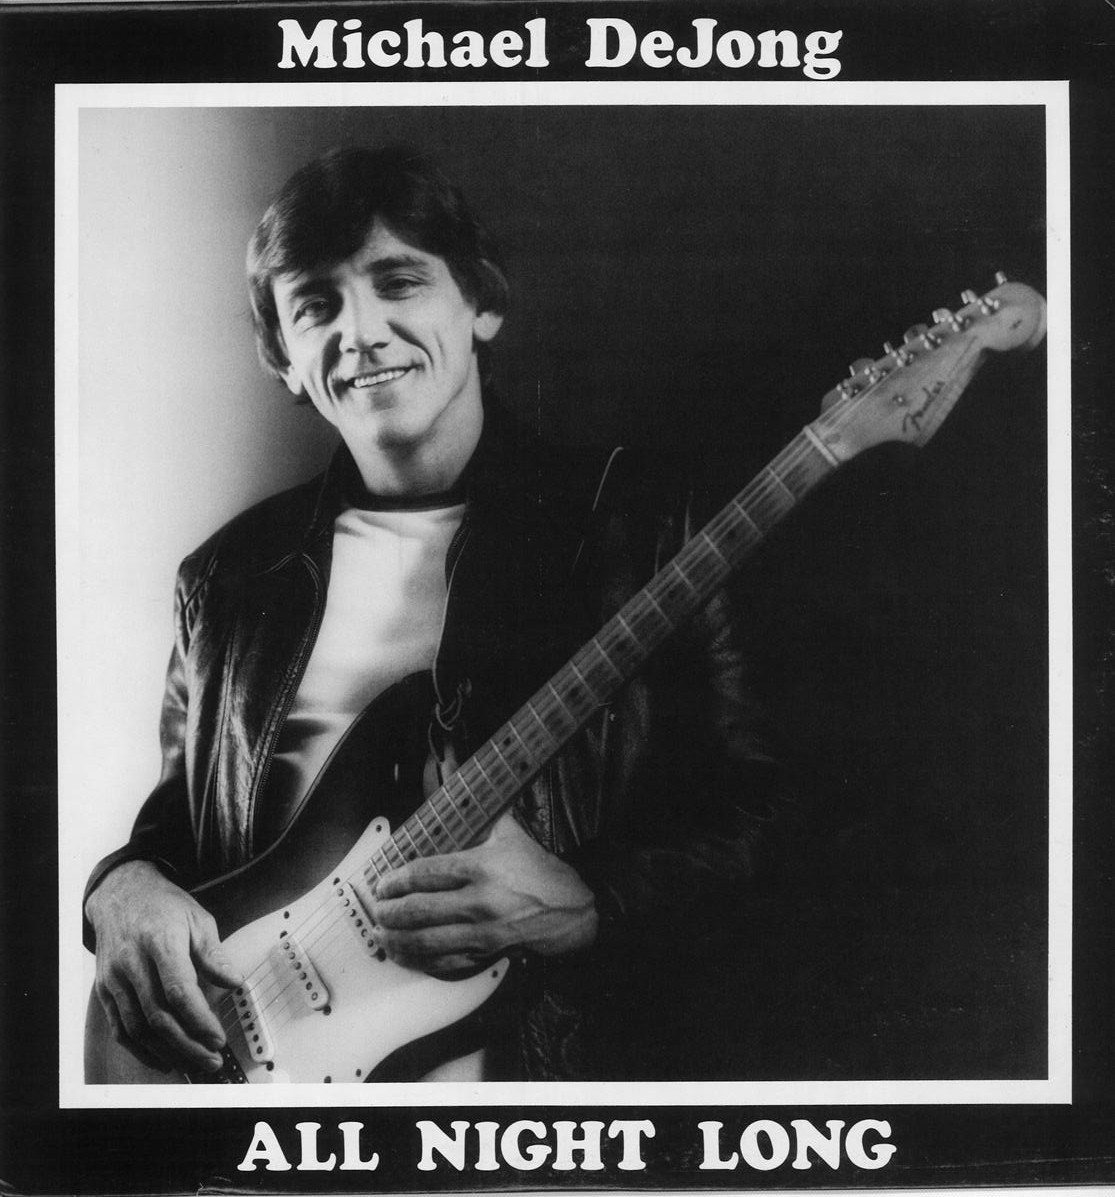 Michael De Jong - All Night Long